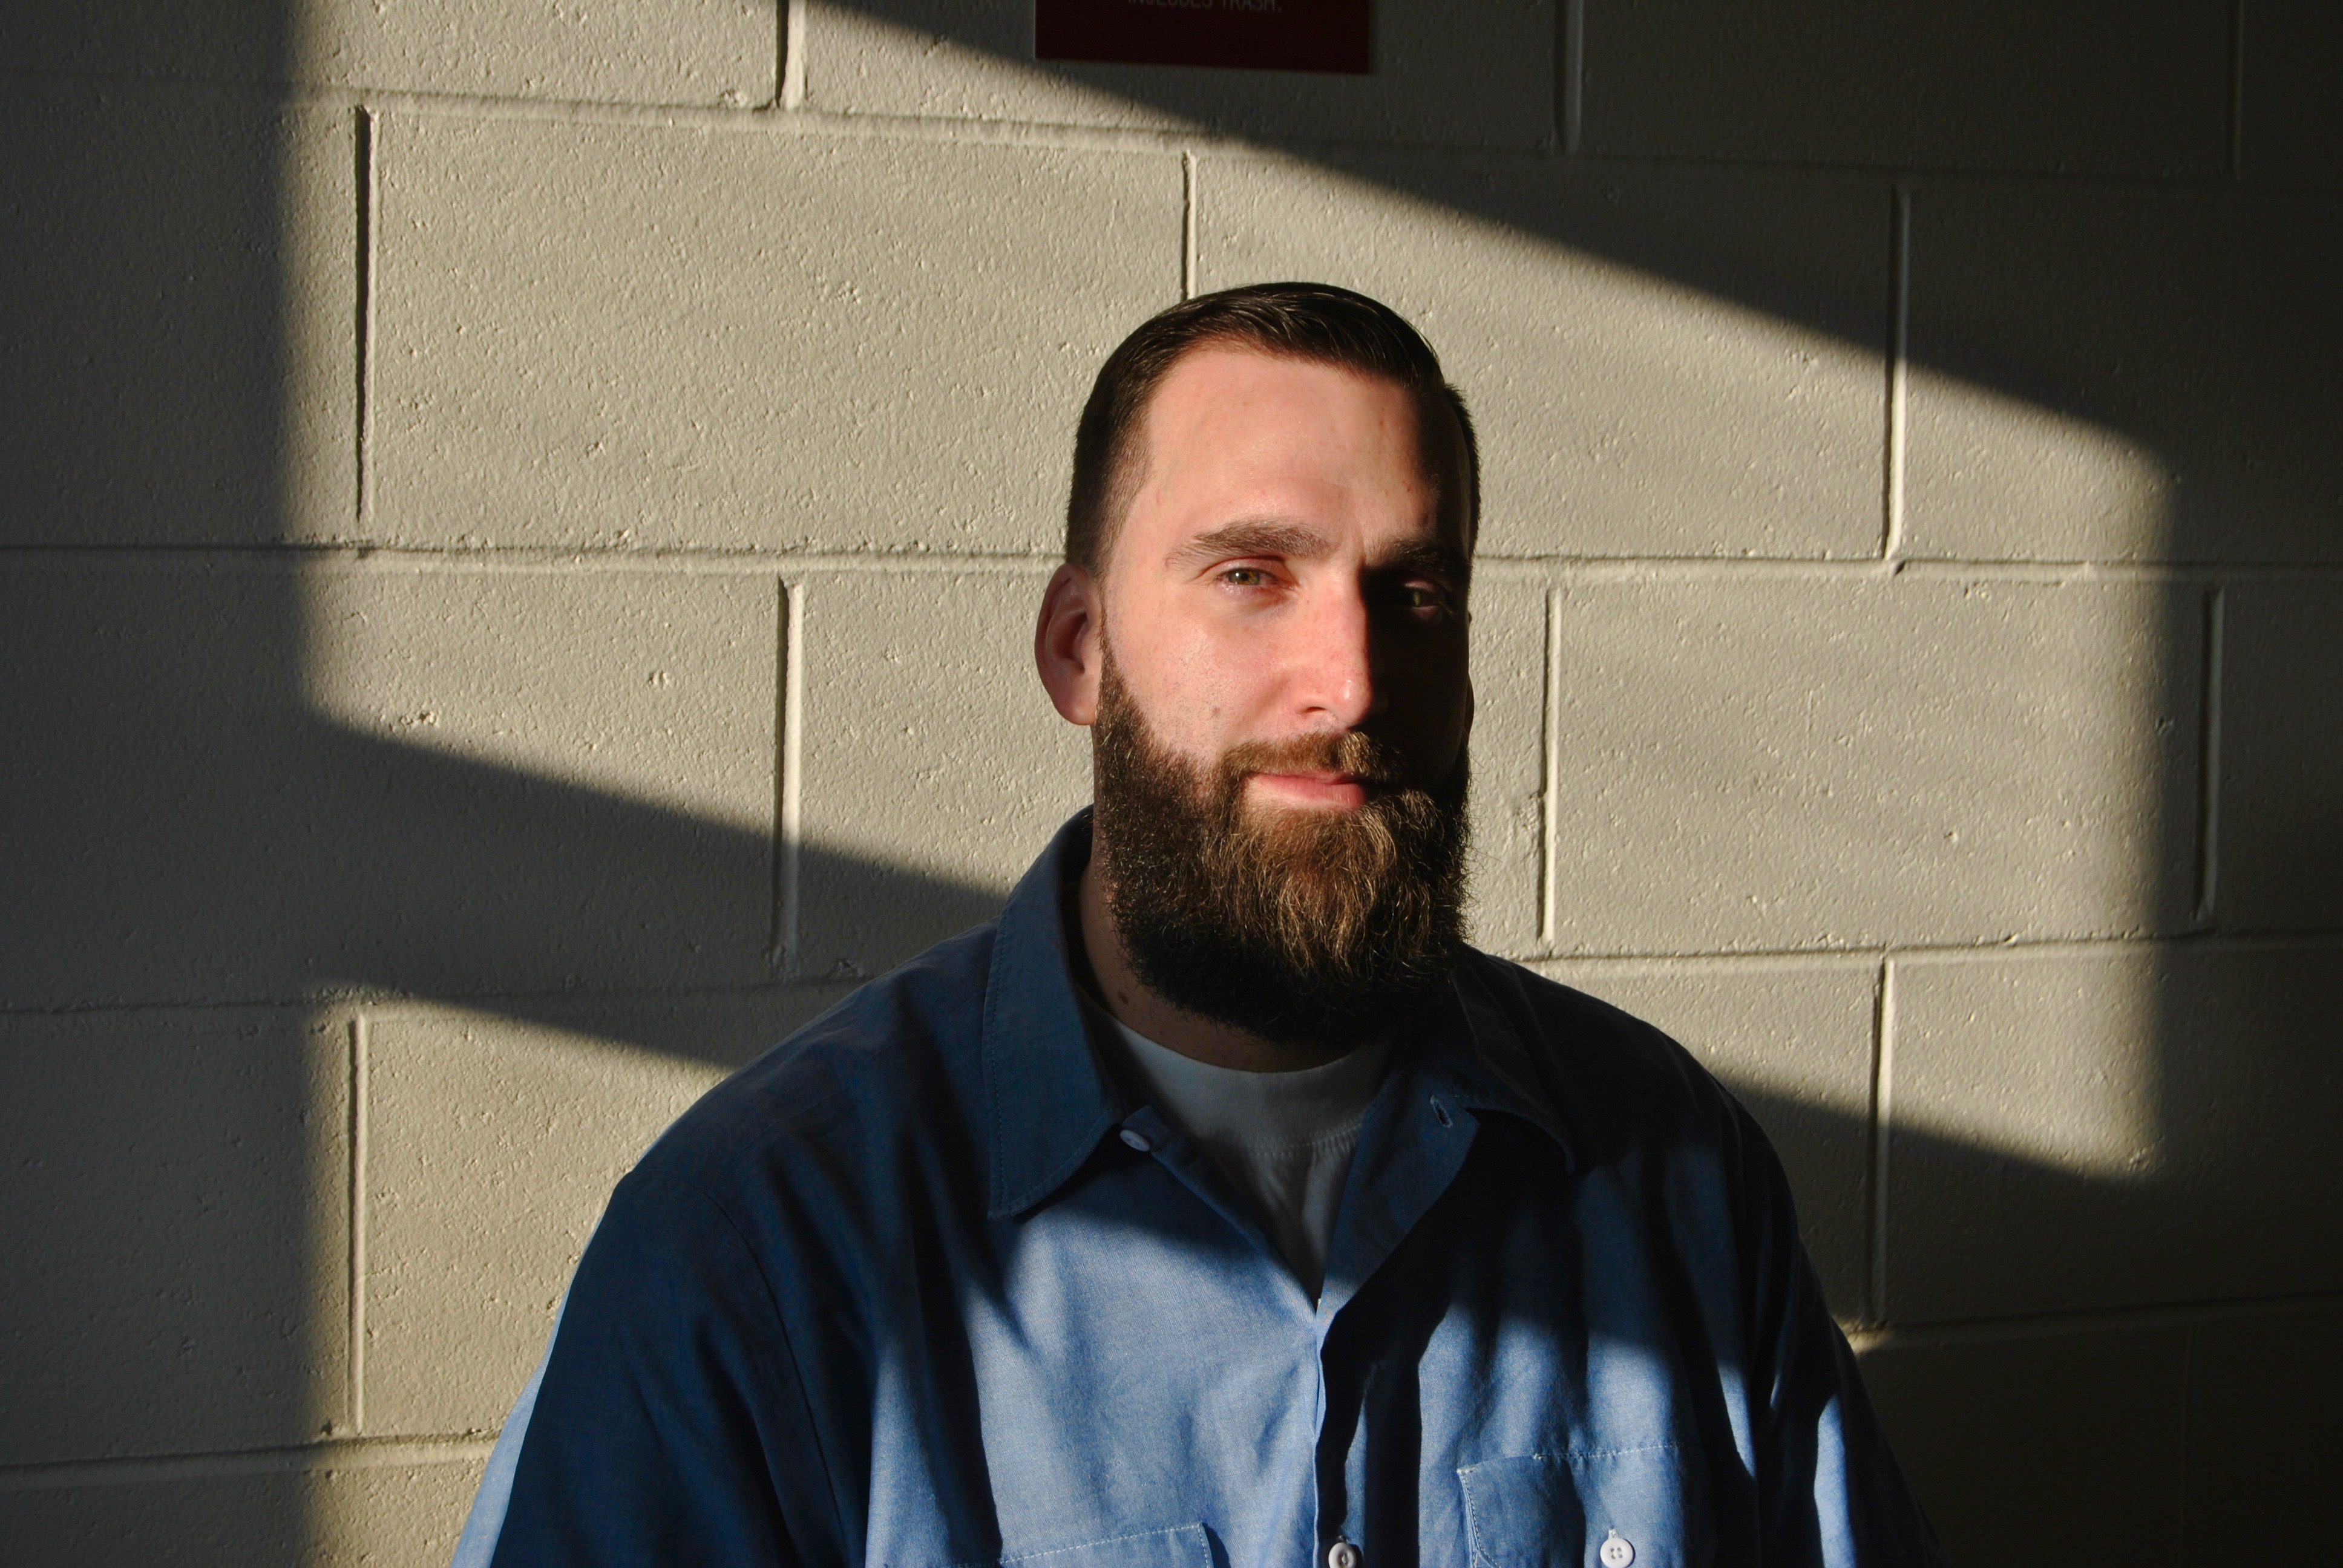 First Maine inmate to enroll in graduate school conducts groundbreaking research in prison | The Portland Phoenix